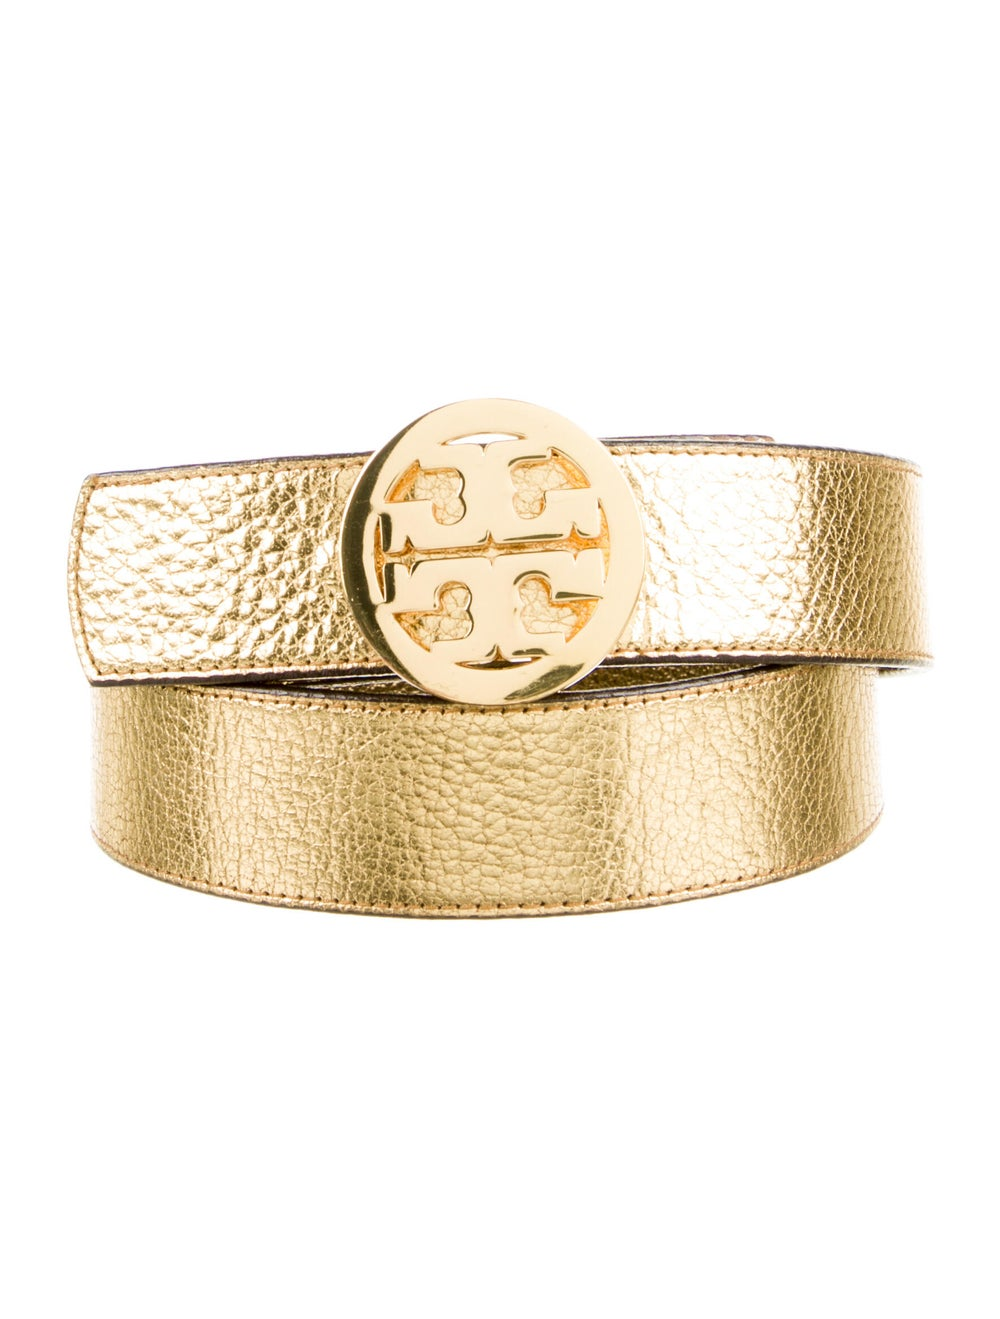 Tory Burch Leather Belt Gold - image 1